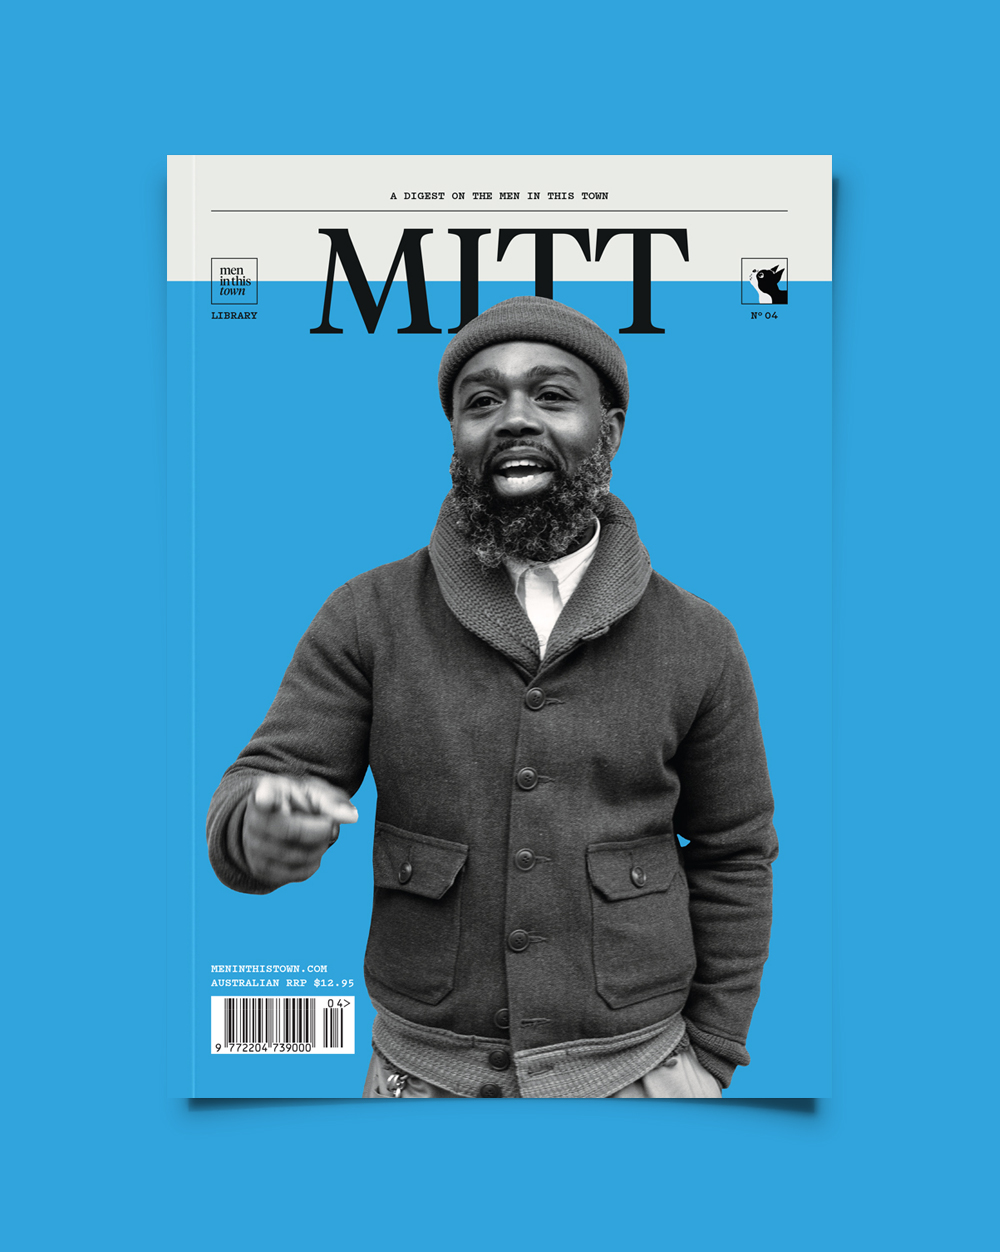 HERE IT IS, MITT MAGAZINE ISSUE 4!   It's been a few months coming but it's finally here,   MITT   magazine  issue 4  with  Ouigi Theodore  on the cover, is now available to pre-order at   The MITT Mrkt  .   After getting the third issue out last September, I decided to go independent in publishing the magazine. There were a couple of hurdles to overcome but with the help of some amazing contributors, we've put together one of the best issues yet and I couldn't be more proud. The pages have been sent to the printer, proofs will arrive early next week and then off to the presses!  Pre-orders and subscribers (offered for a limited last year) will have their copies sent out starting  March 24th  and  stockists  will start receiving stock in early April.  Thank you again for all of your support, I'm so excited for you to get your mitts on this issue and when you do, I really hope you love it as much as I do.  Cheers, Giuseppe